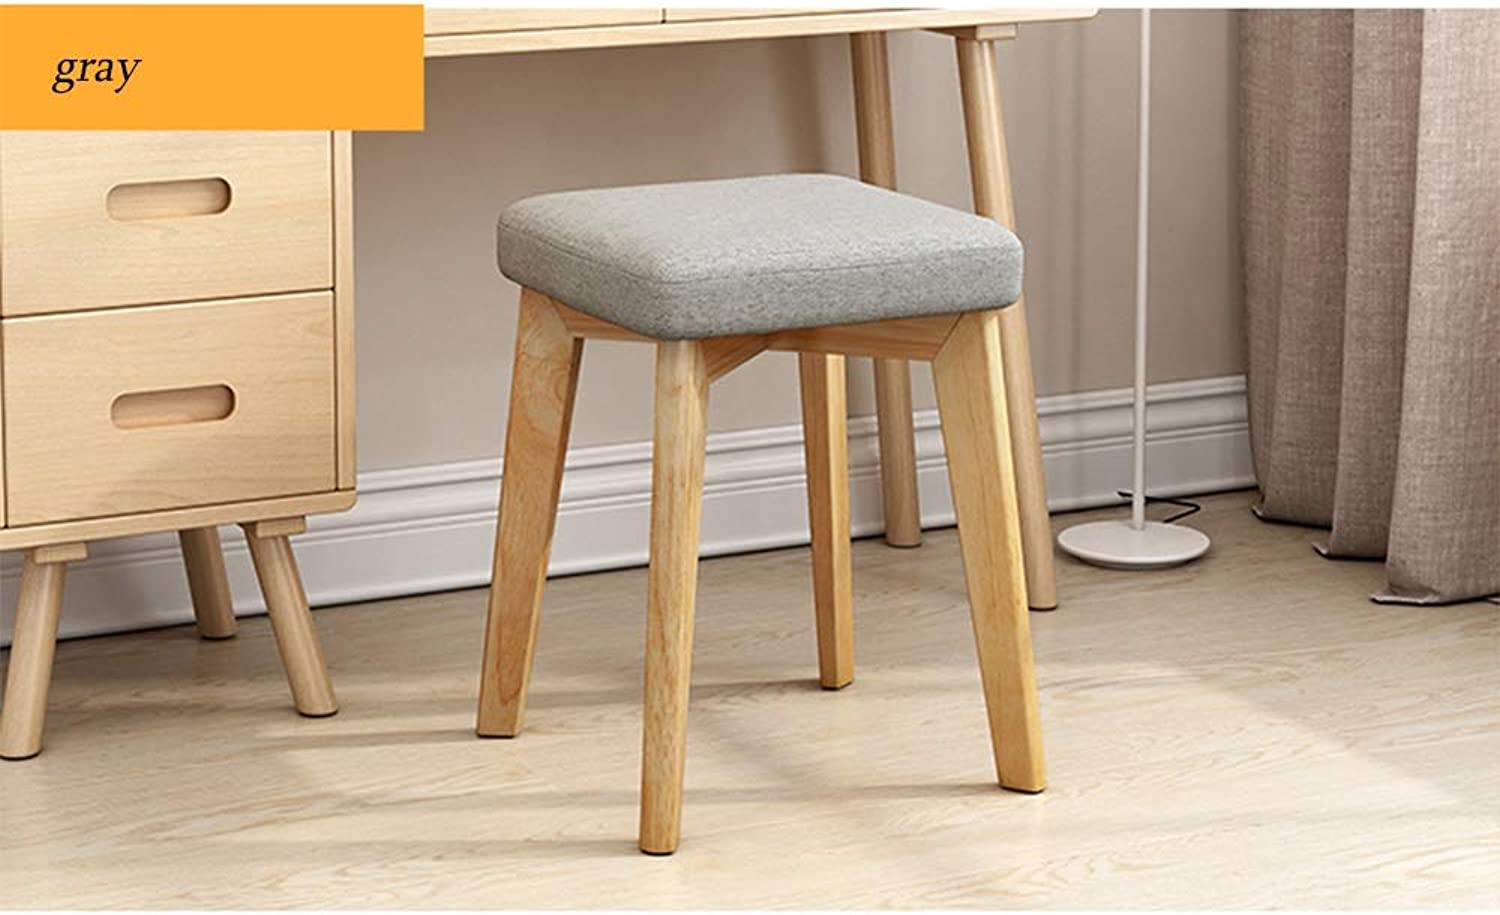 Stool Home Solid Wood Small Bench Sofa Stool Fashion Creative Simple Modern Small Chair Low Stool